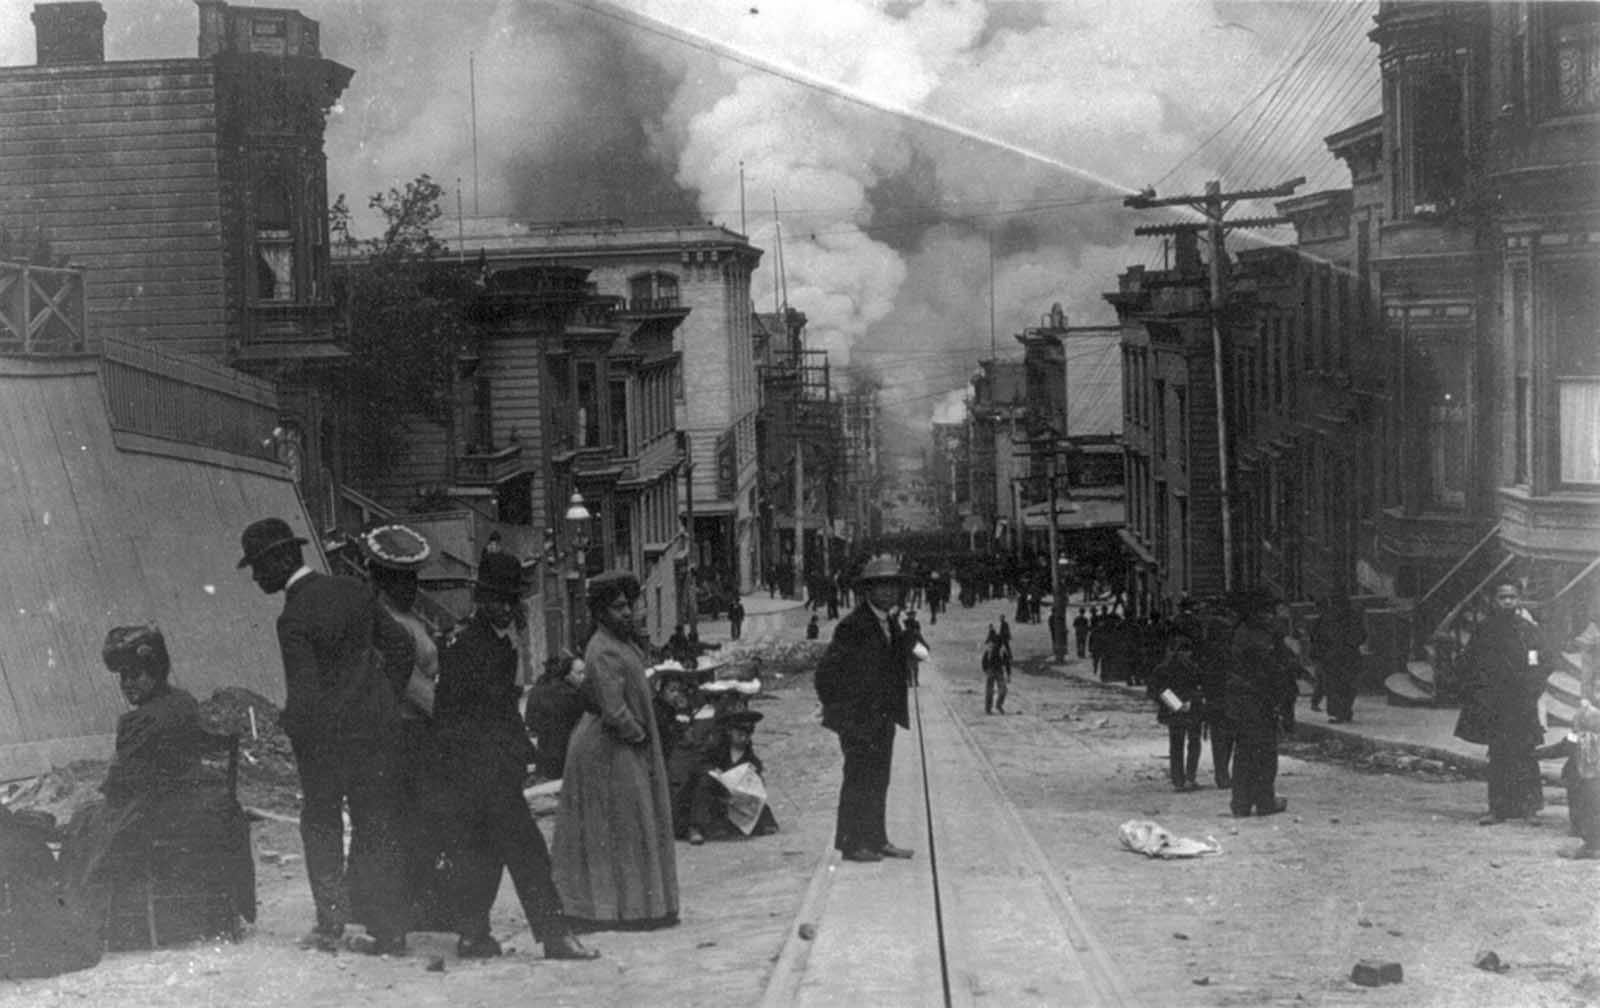 African American families on street during the San Francisco Fire of 1906, with clouds of smoke billowing at bottom of hill in background.